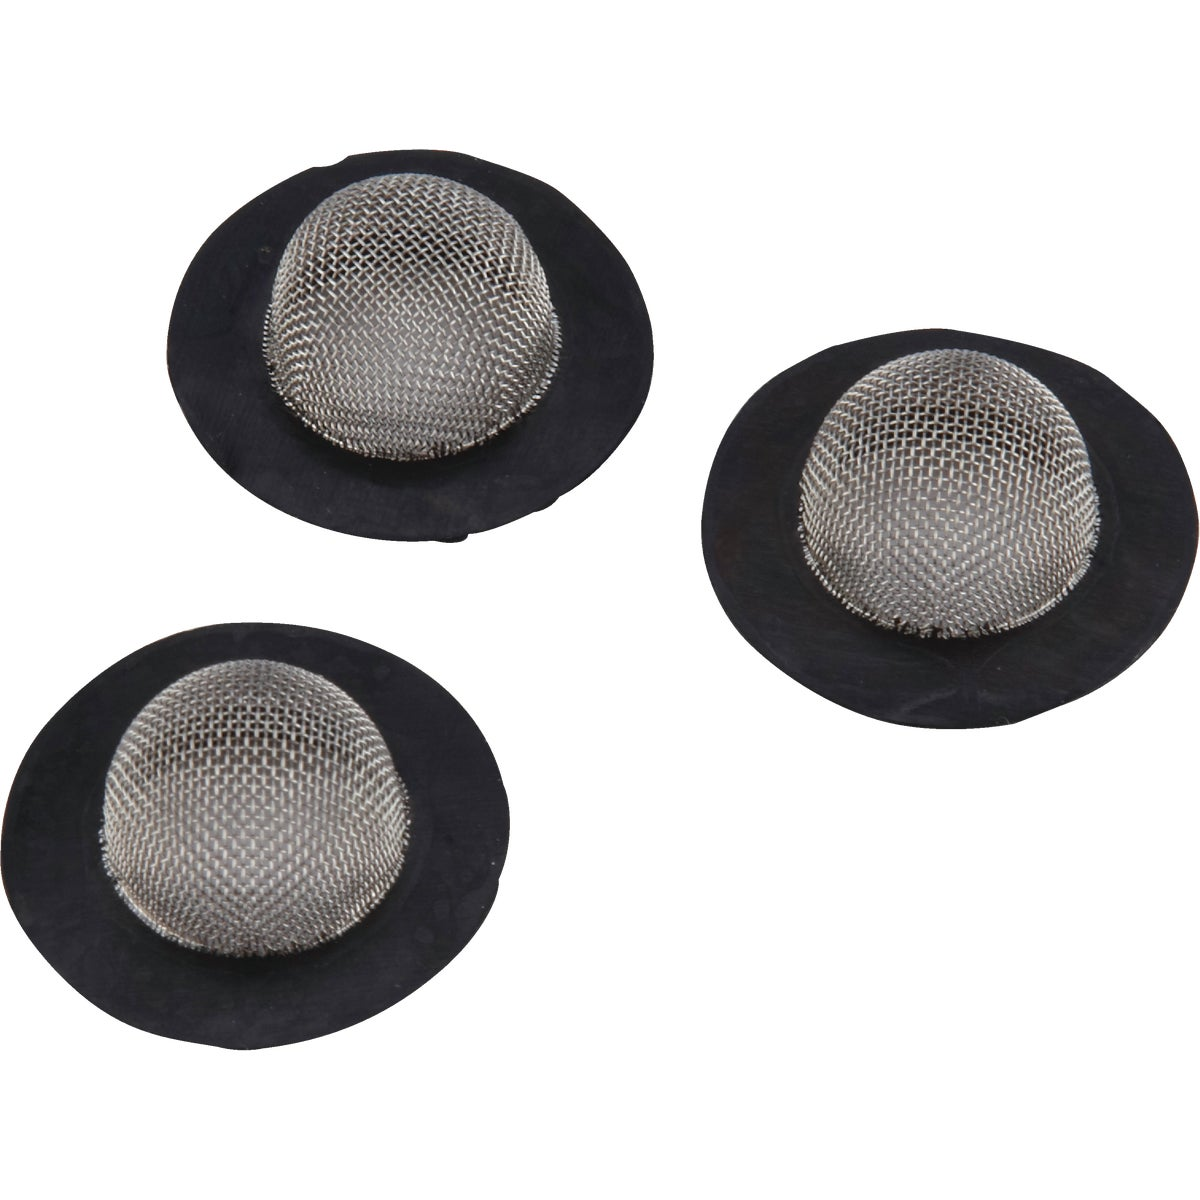 "3PK 1"" FILTER WASHERS - 20183 by Camco Mfg."